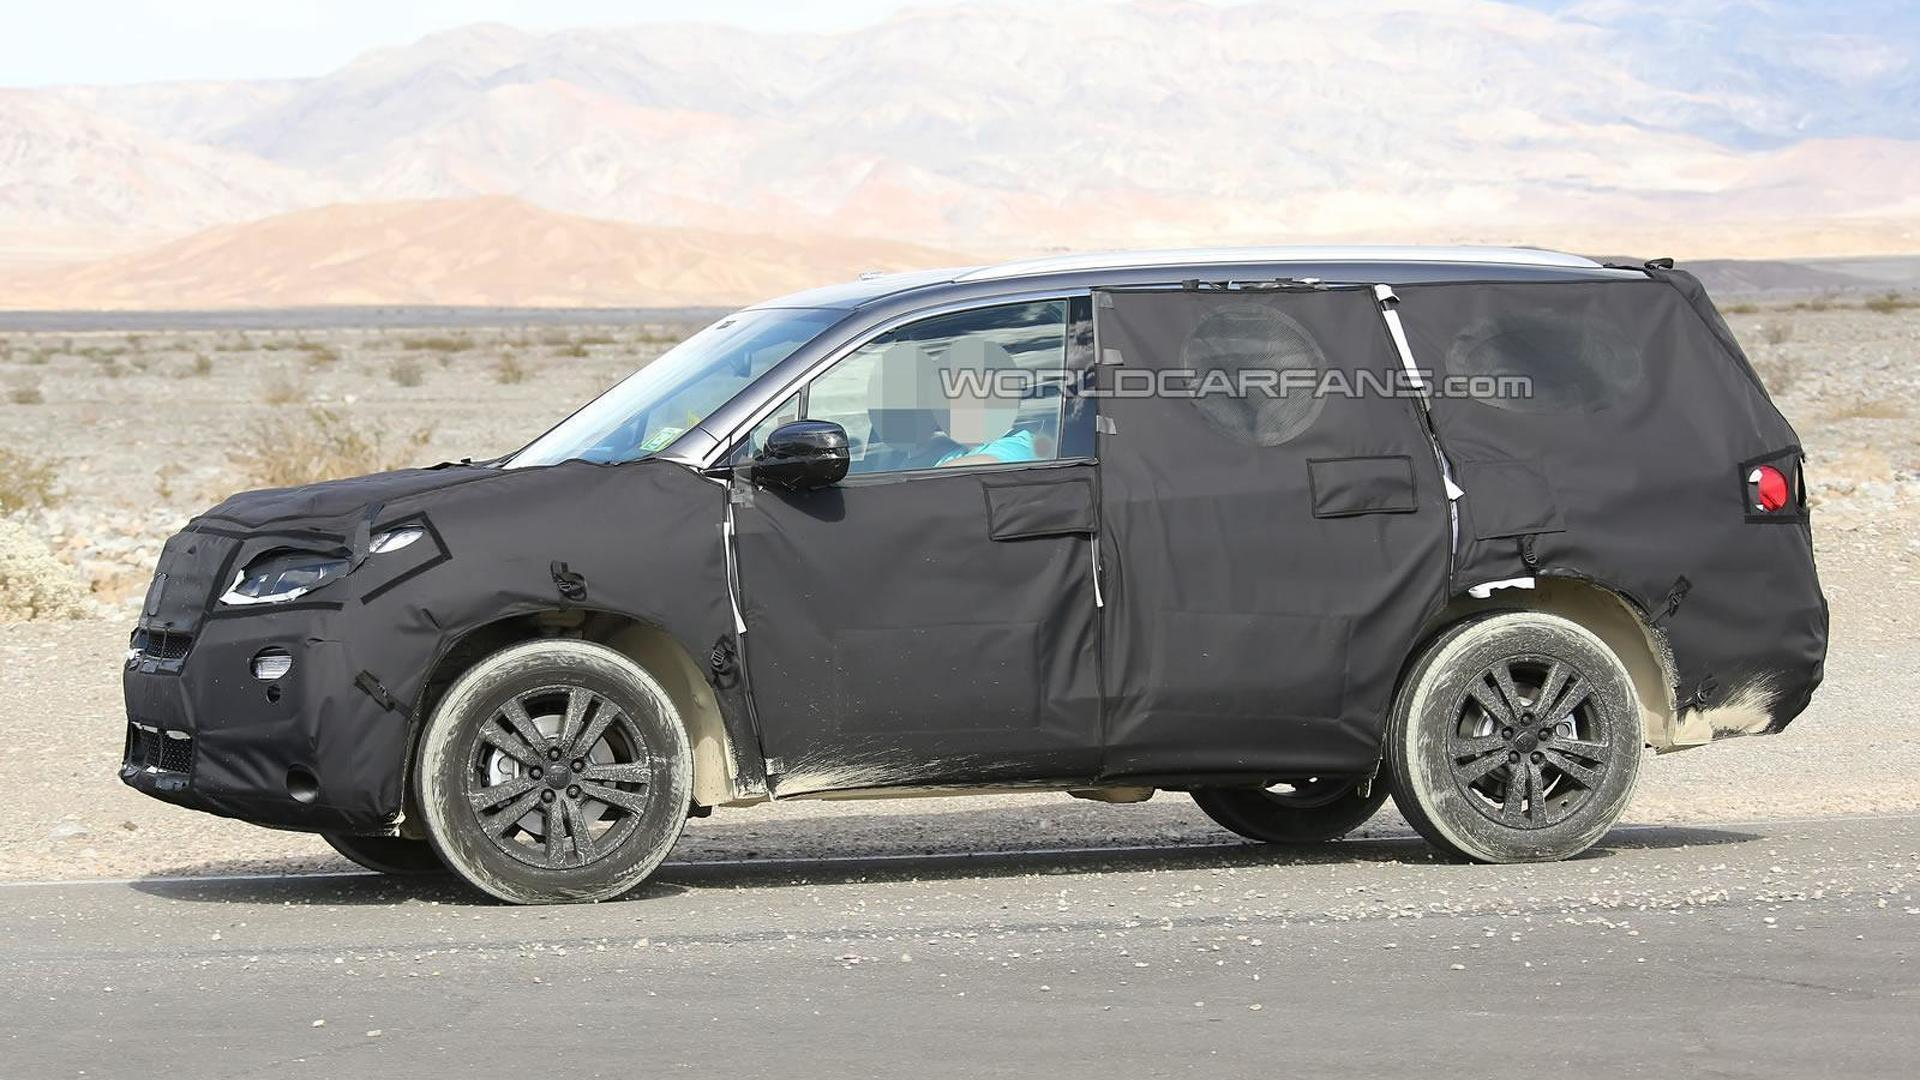 Redesigned Honda Pilot Confirmed For This Summer New Ridgeline Coming In 2016